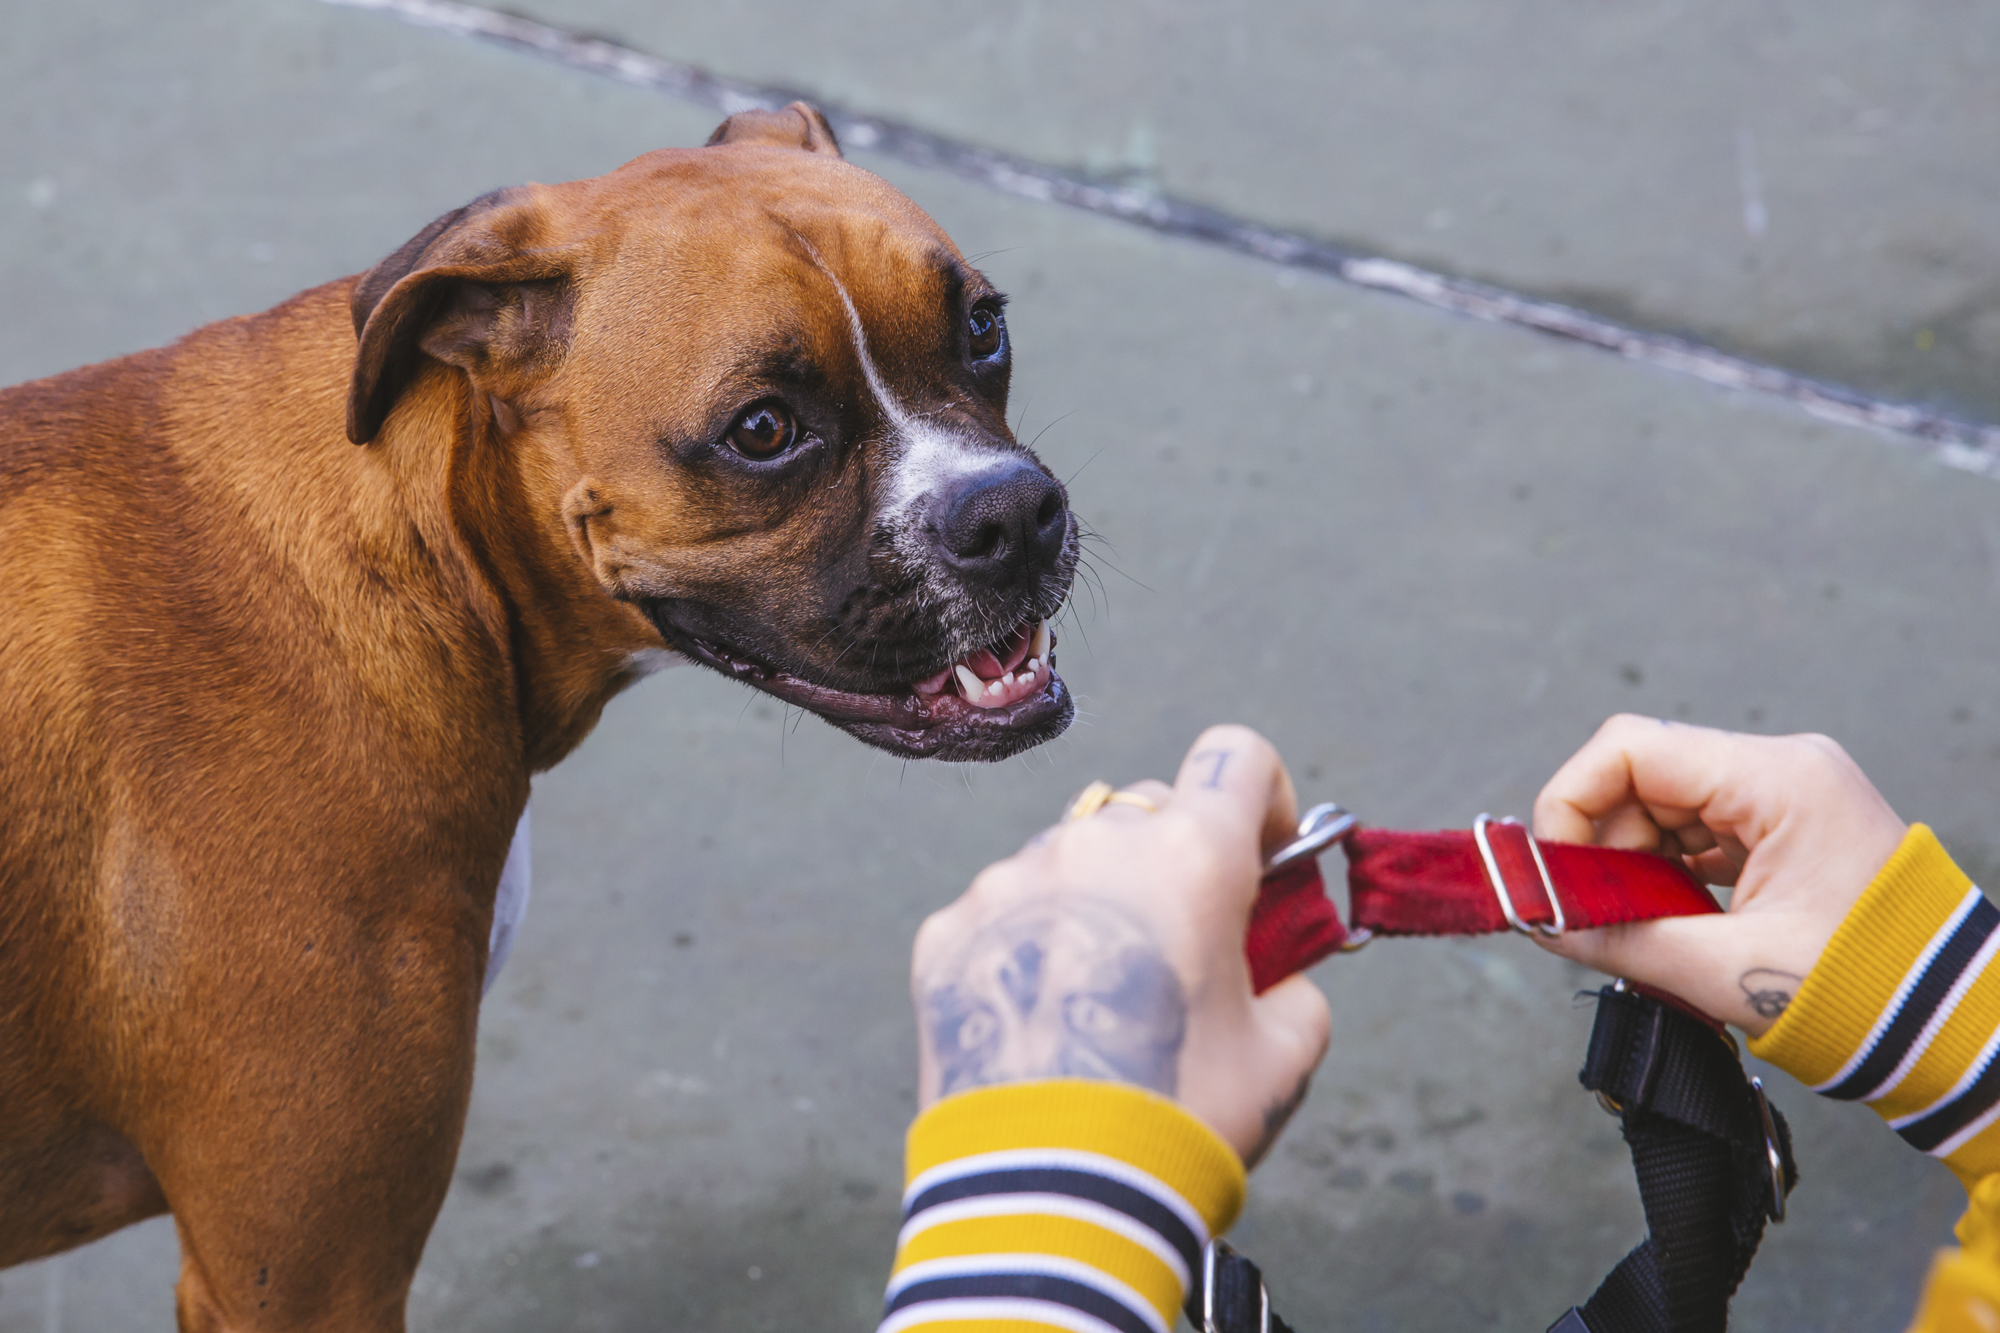 Everyone meet this beautiful 13-month-old Boxer, Russell! Russell is a fun lovin' pup who is living the single life. He likes berries, popcorn and tug-o-war. He dislikes baths and waking up early. You can follow Russell's dog journey through life on Instagram @carletonjames.{ }The Seattle RUFFined Spotlight is a weekly profile of local pets living and loving life in the PNW. If you or someone you know has a pet you'd like featured, email us at hello@seattlerefined.com or tag #SeattleRUFFined and your furbaby could be the next spotlighted! (Image: Sunita Martini / Seattle Refined).